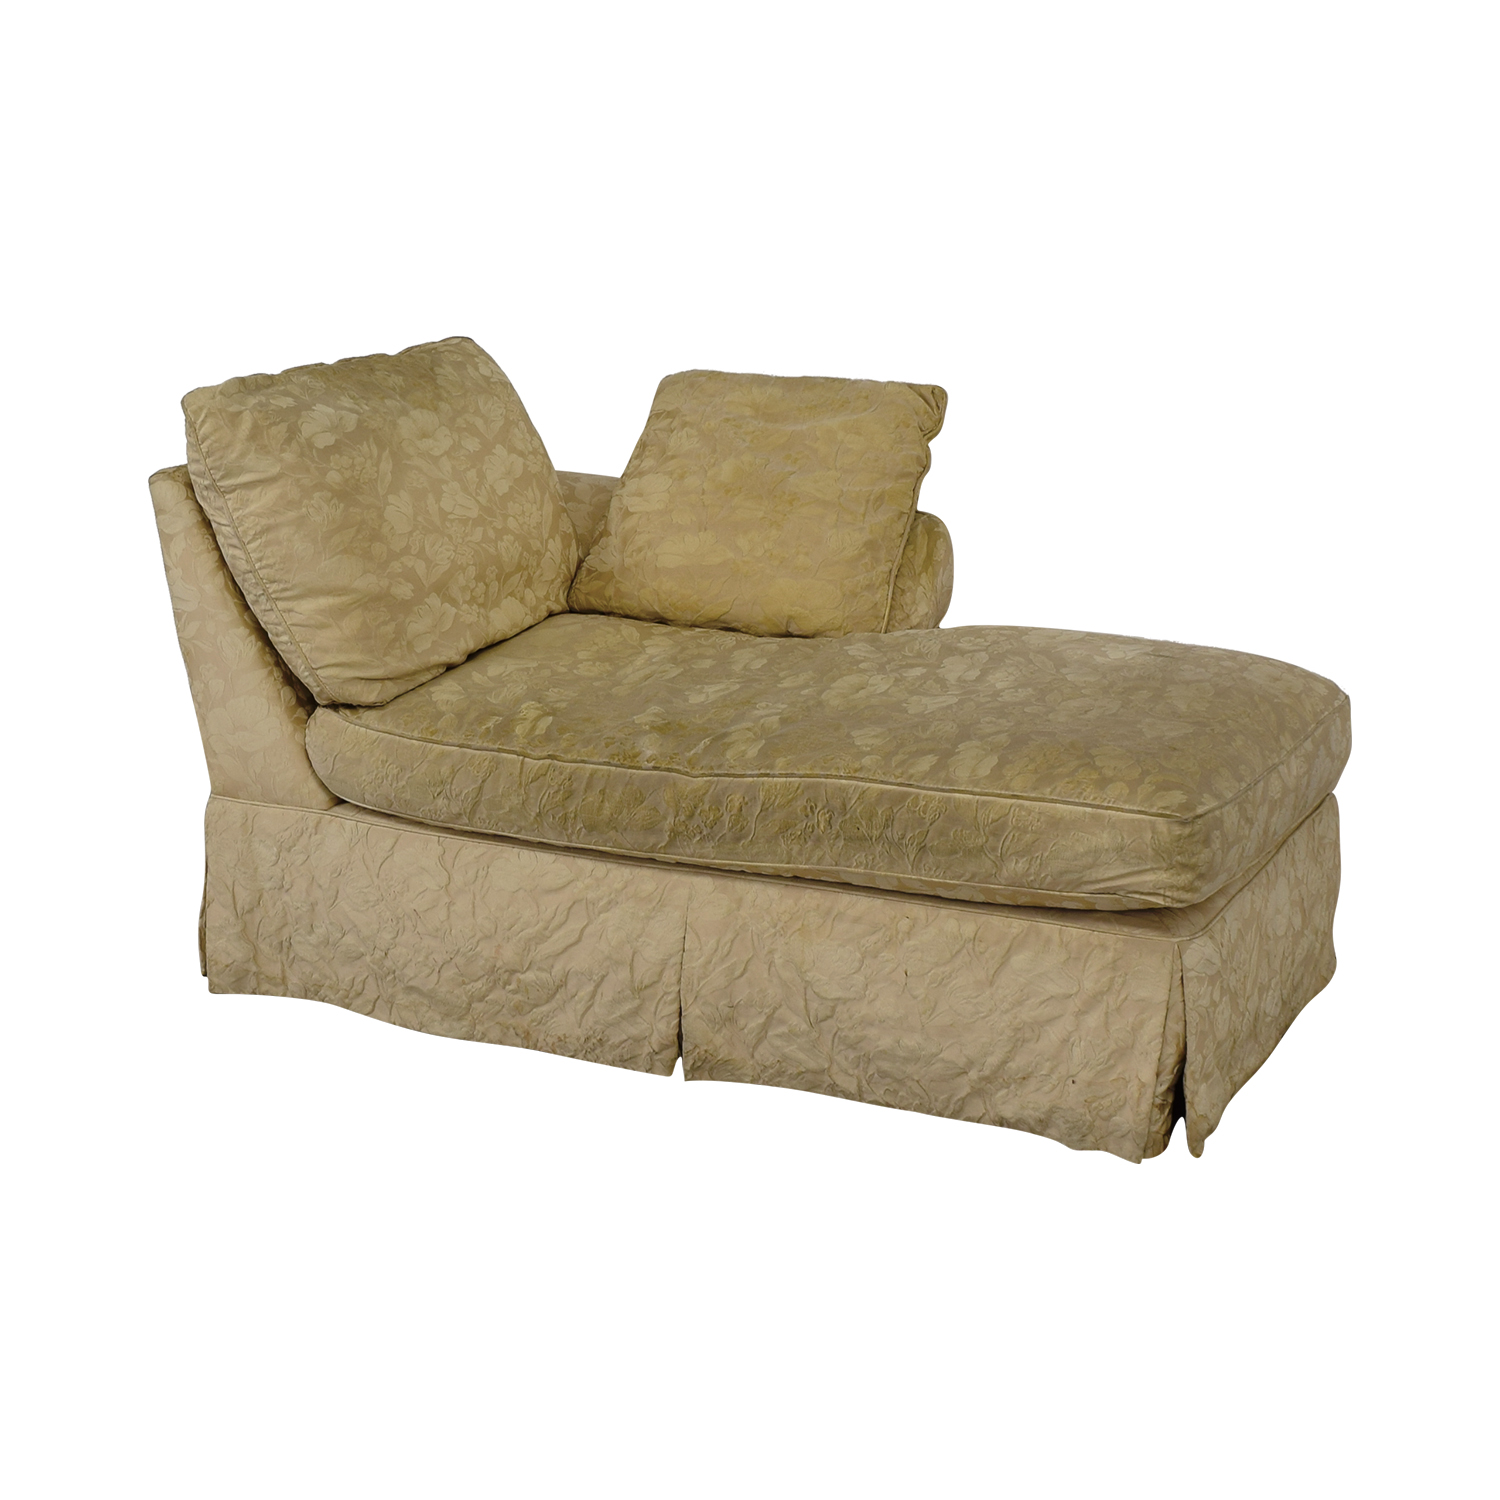 Jacquard Beige Skirted Chaise